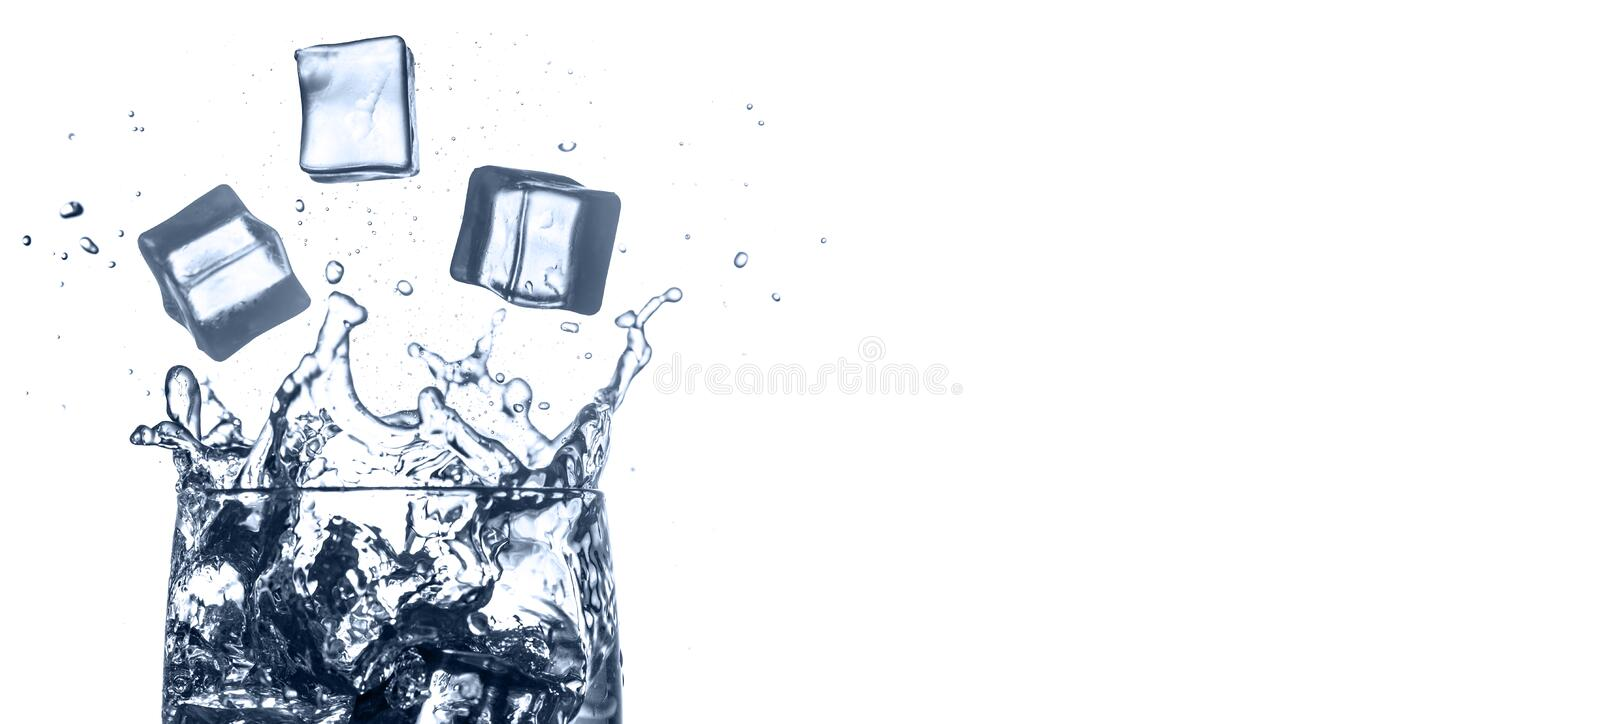 Water splashes. Falling ice cubes into glass isolated on white background. Free space for text royalty free stock images